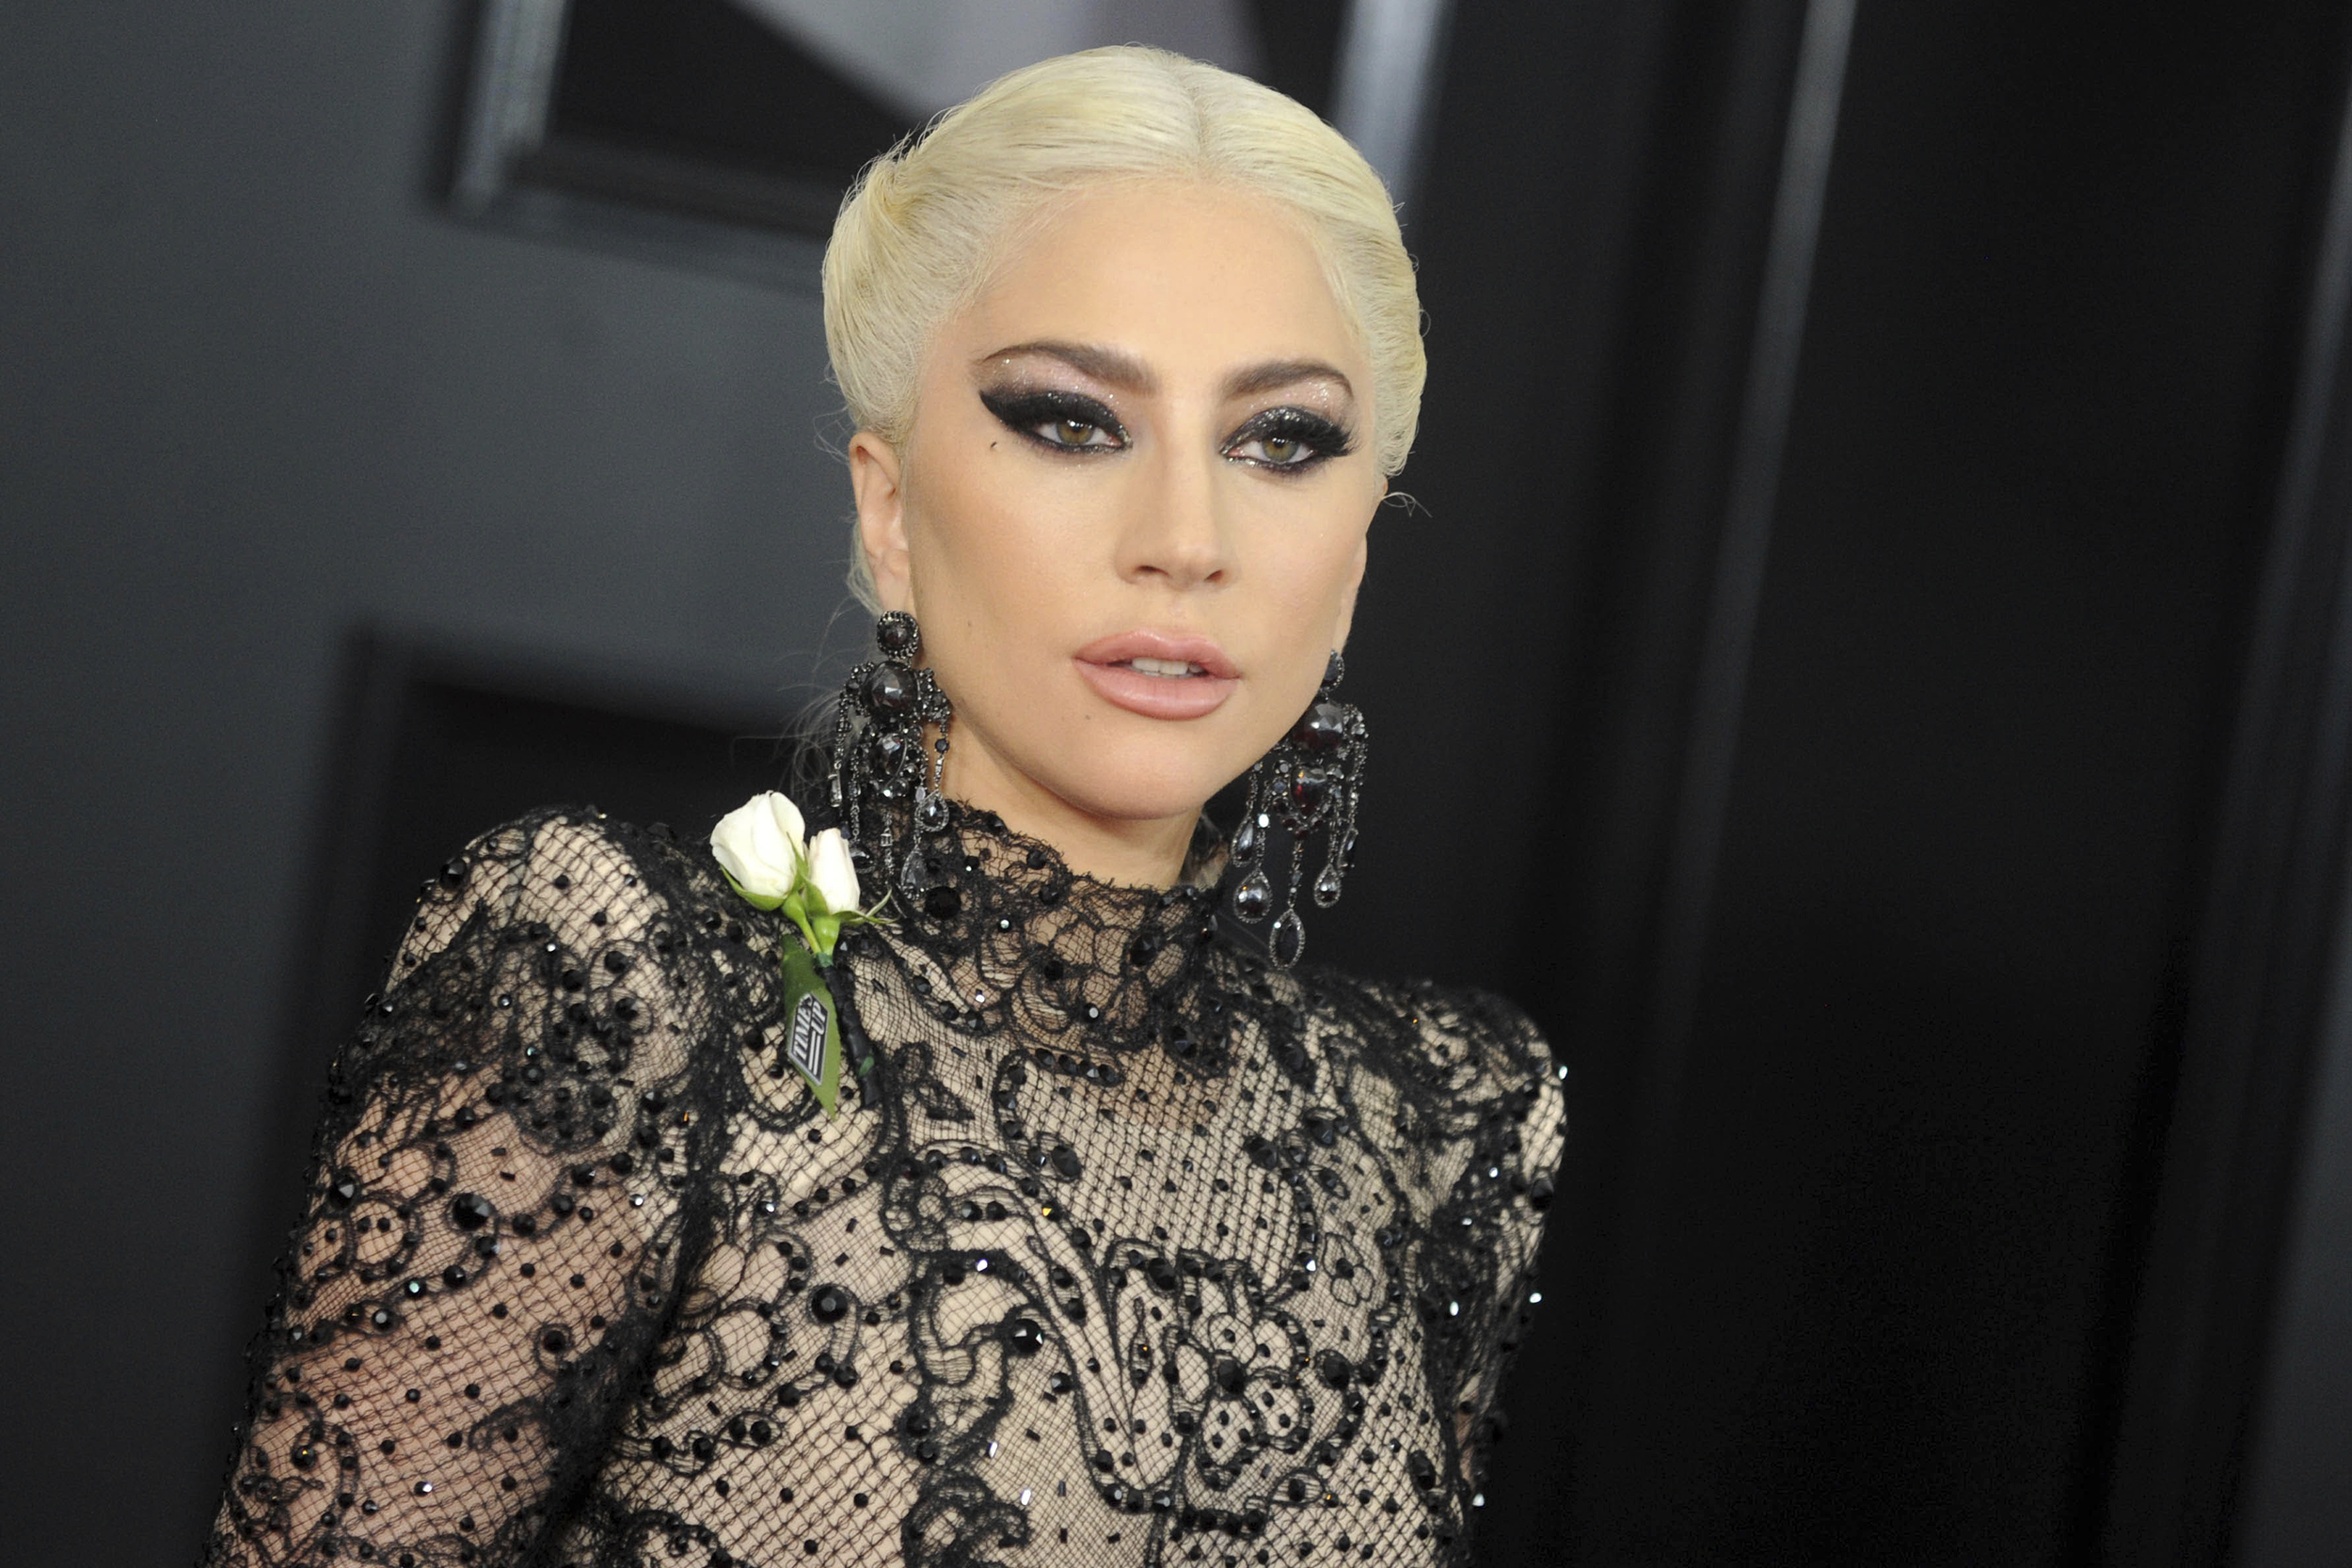 'Growing from trauma': Man shot while walking Lady Gaga's dogs appeals for help online